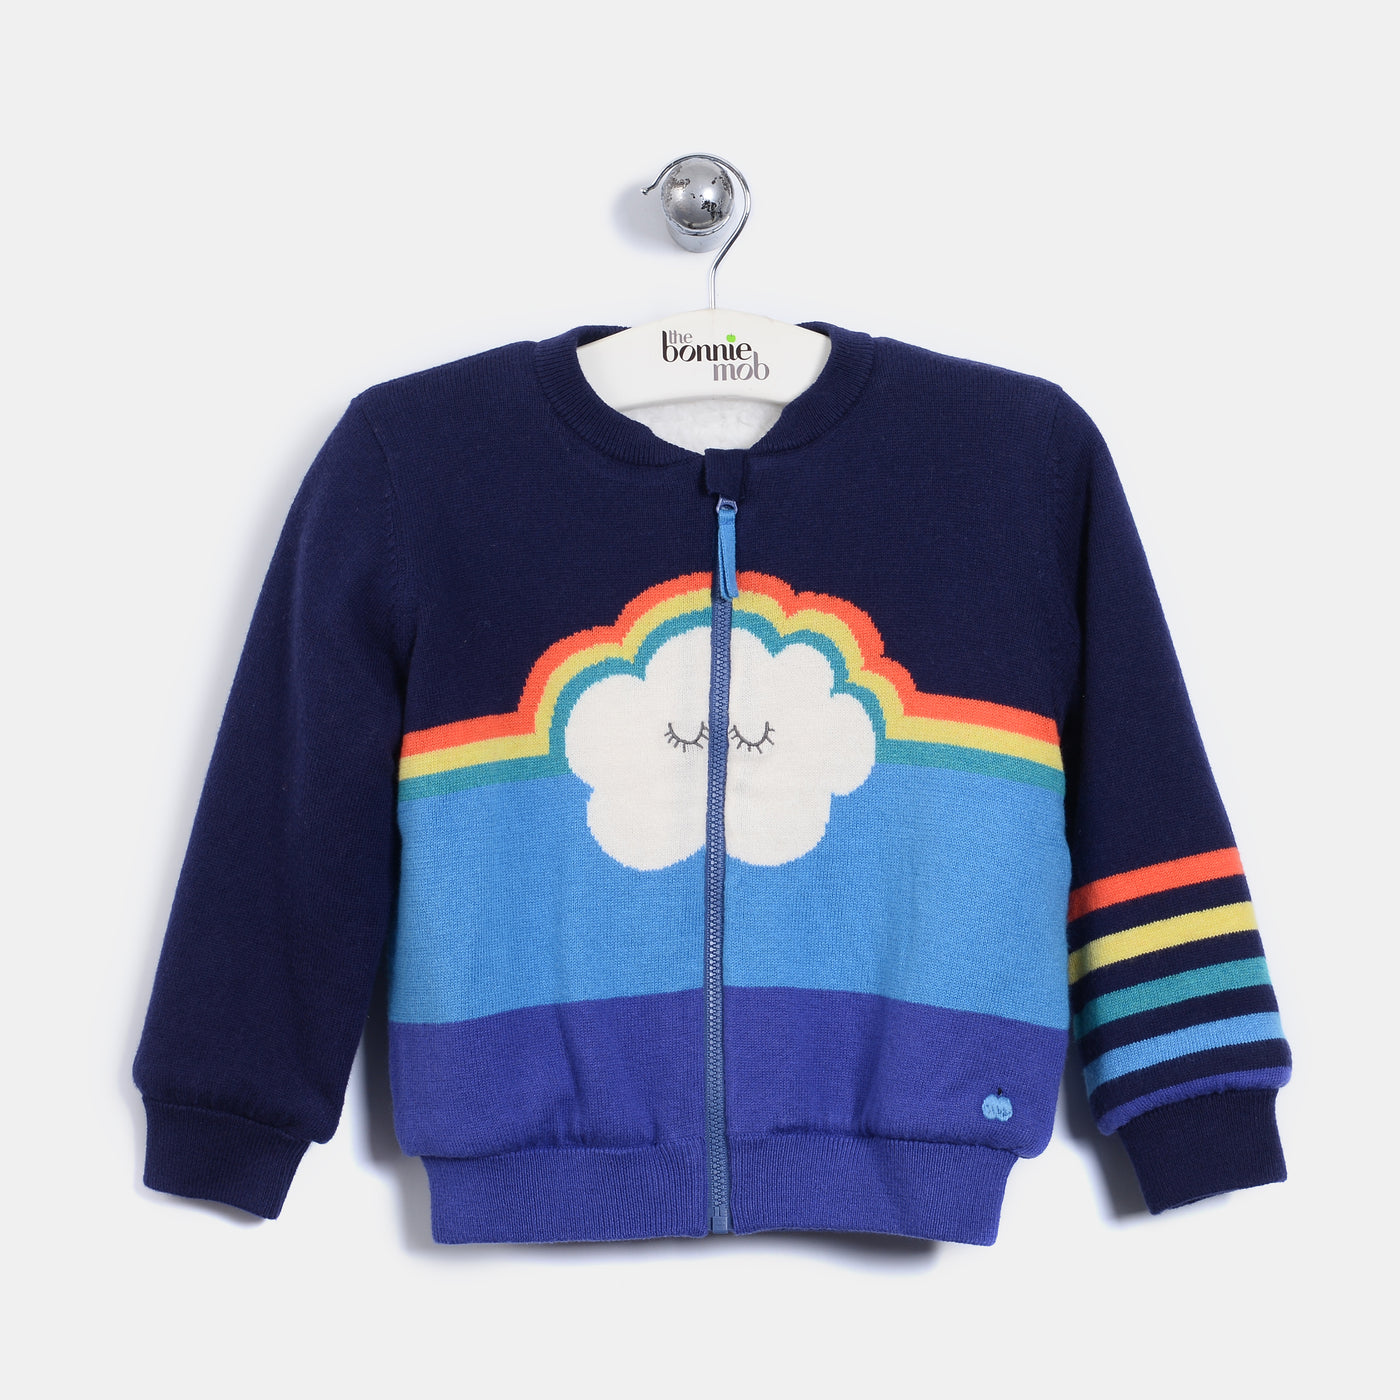 L-CHARLIE - Rainbow Cloud Zip Cardigan - Baby Boy - Gitane blue